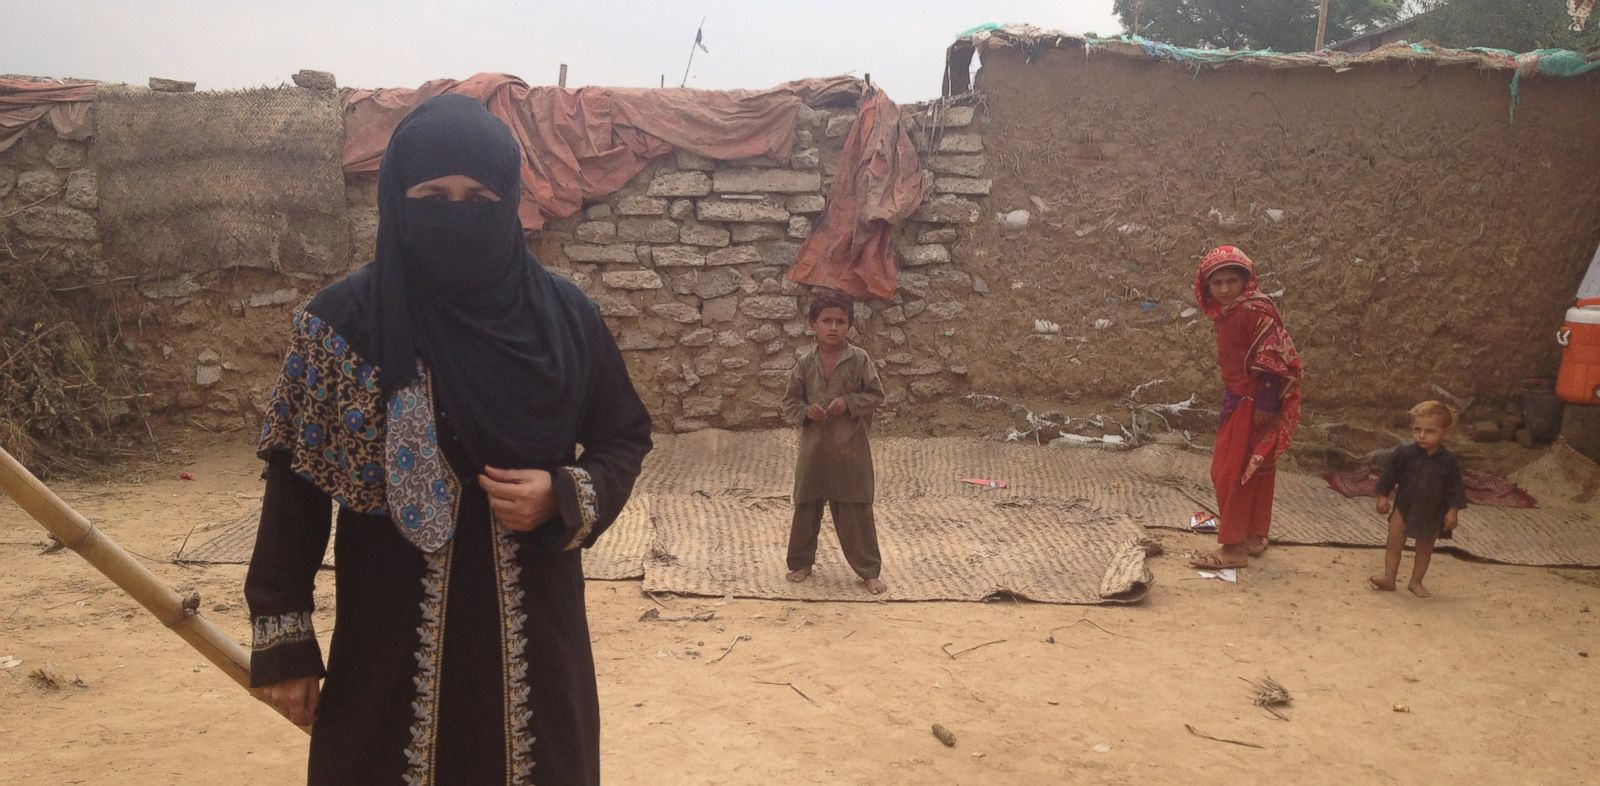 PHOTO: Chand Bibi at school with some of her students in the background. Her school has no roof, a limited number of notebooks and a tiny white board, but she thinks it provides some service for children who would otherwise have no school to go to.